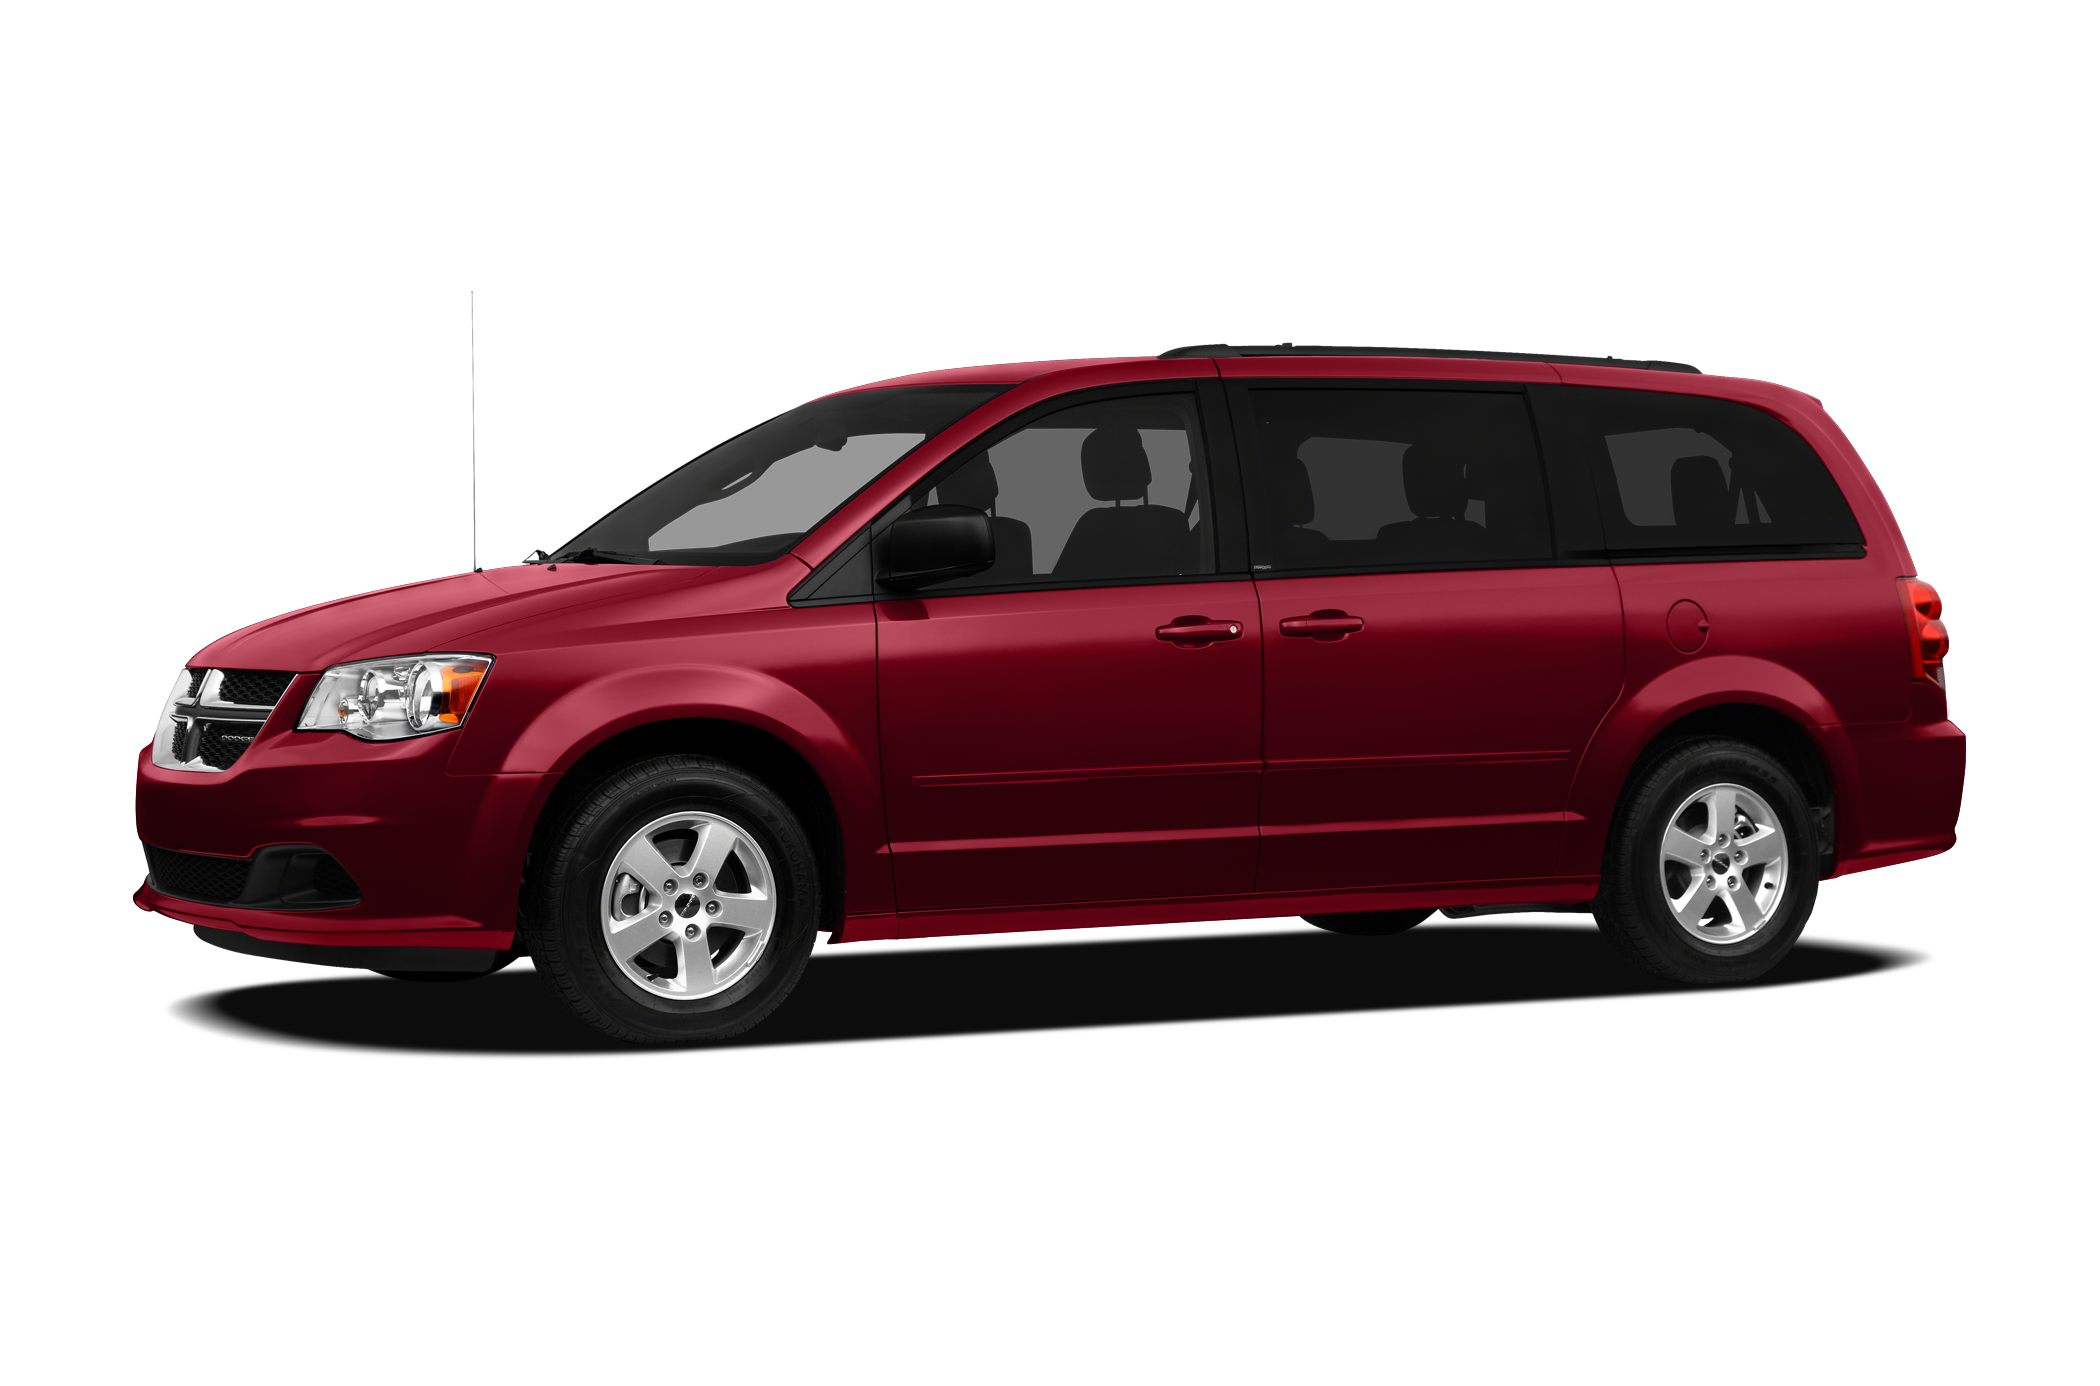 2011 Dodge Grand Caravan Express Minivan for sale in Myrtle Beach for $12,122 with 70,012 miles